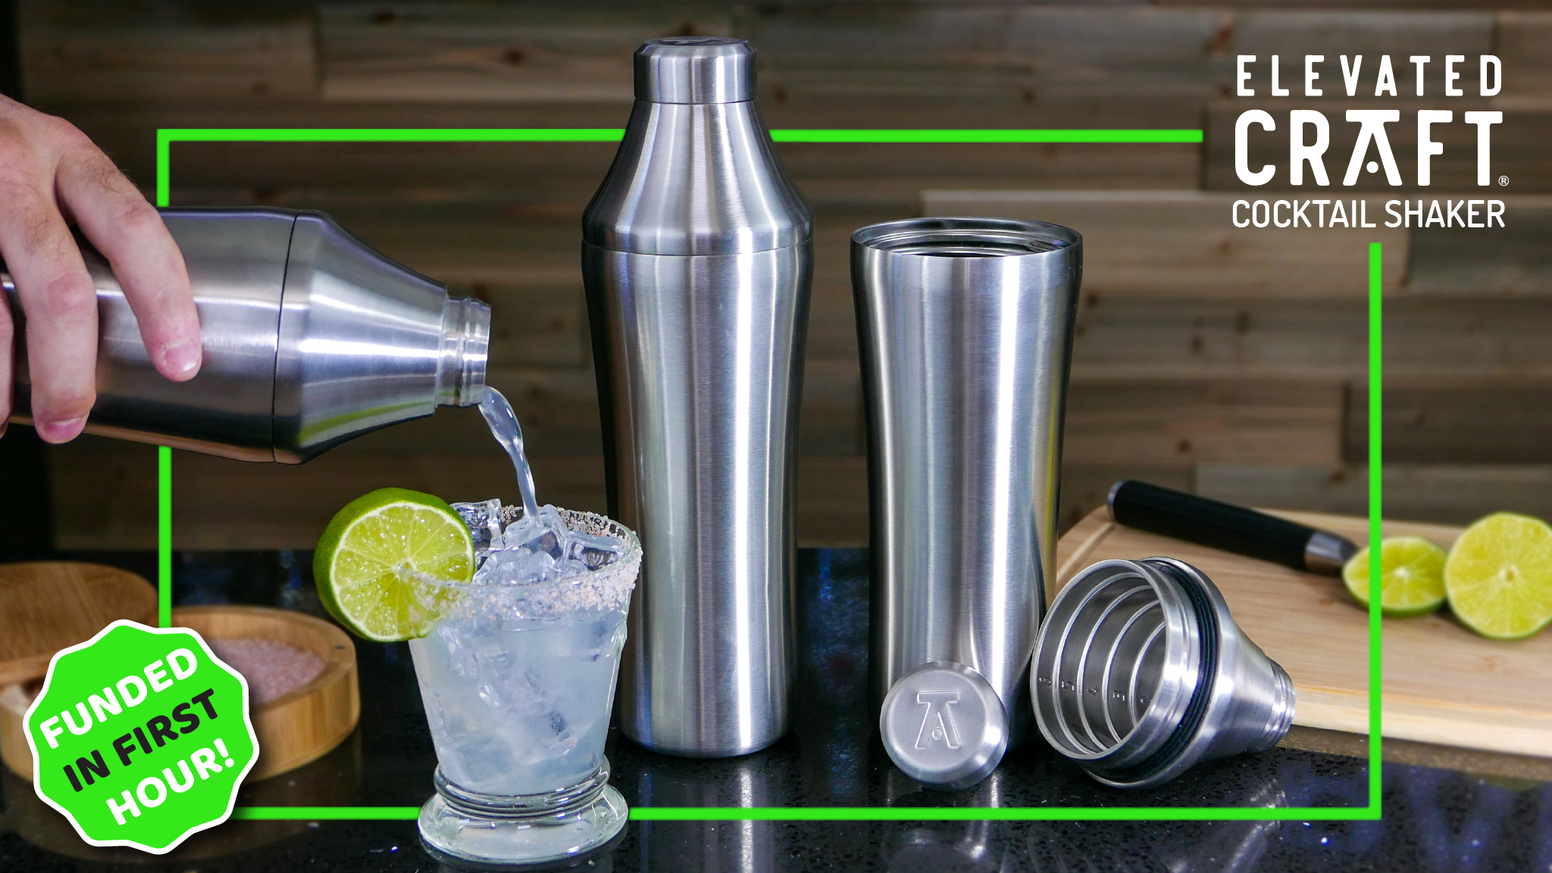 An innovative tool for every home bar. Vacuum insulated with a patented measuring system and 750 ml capacity.